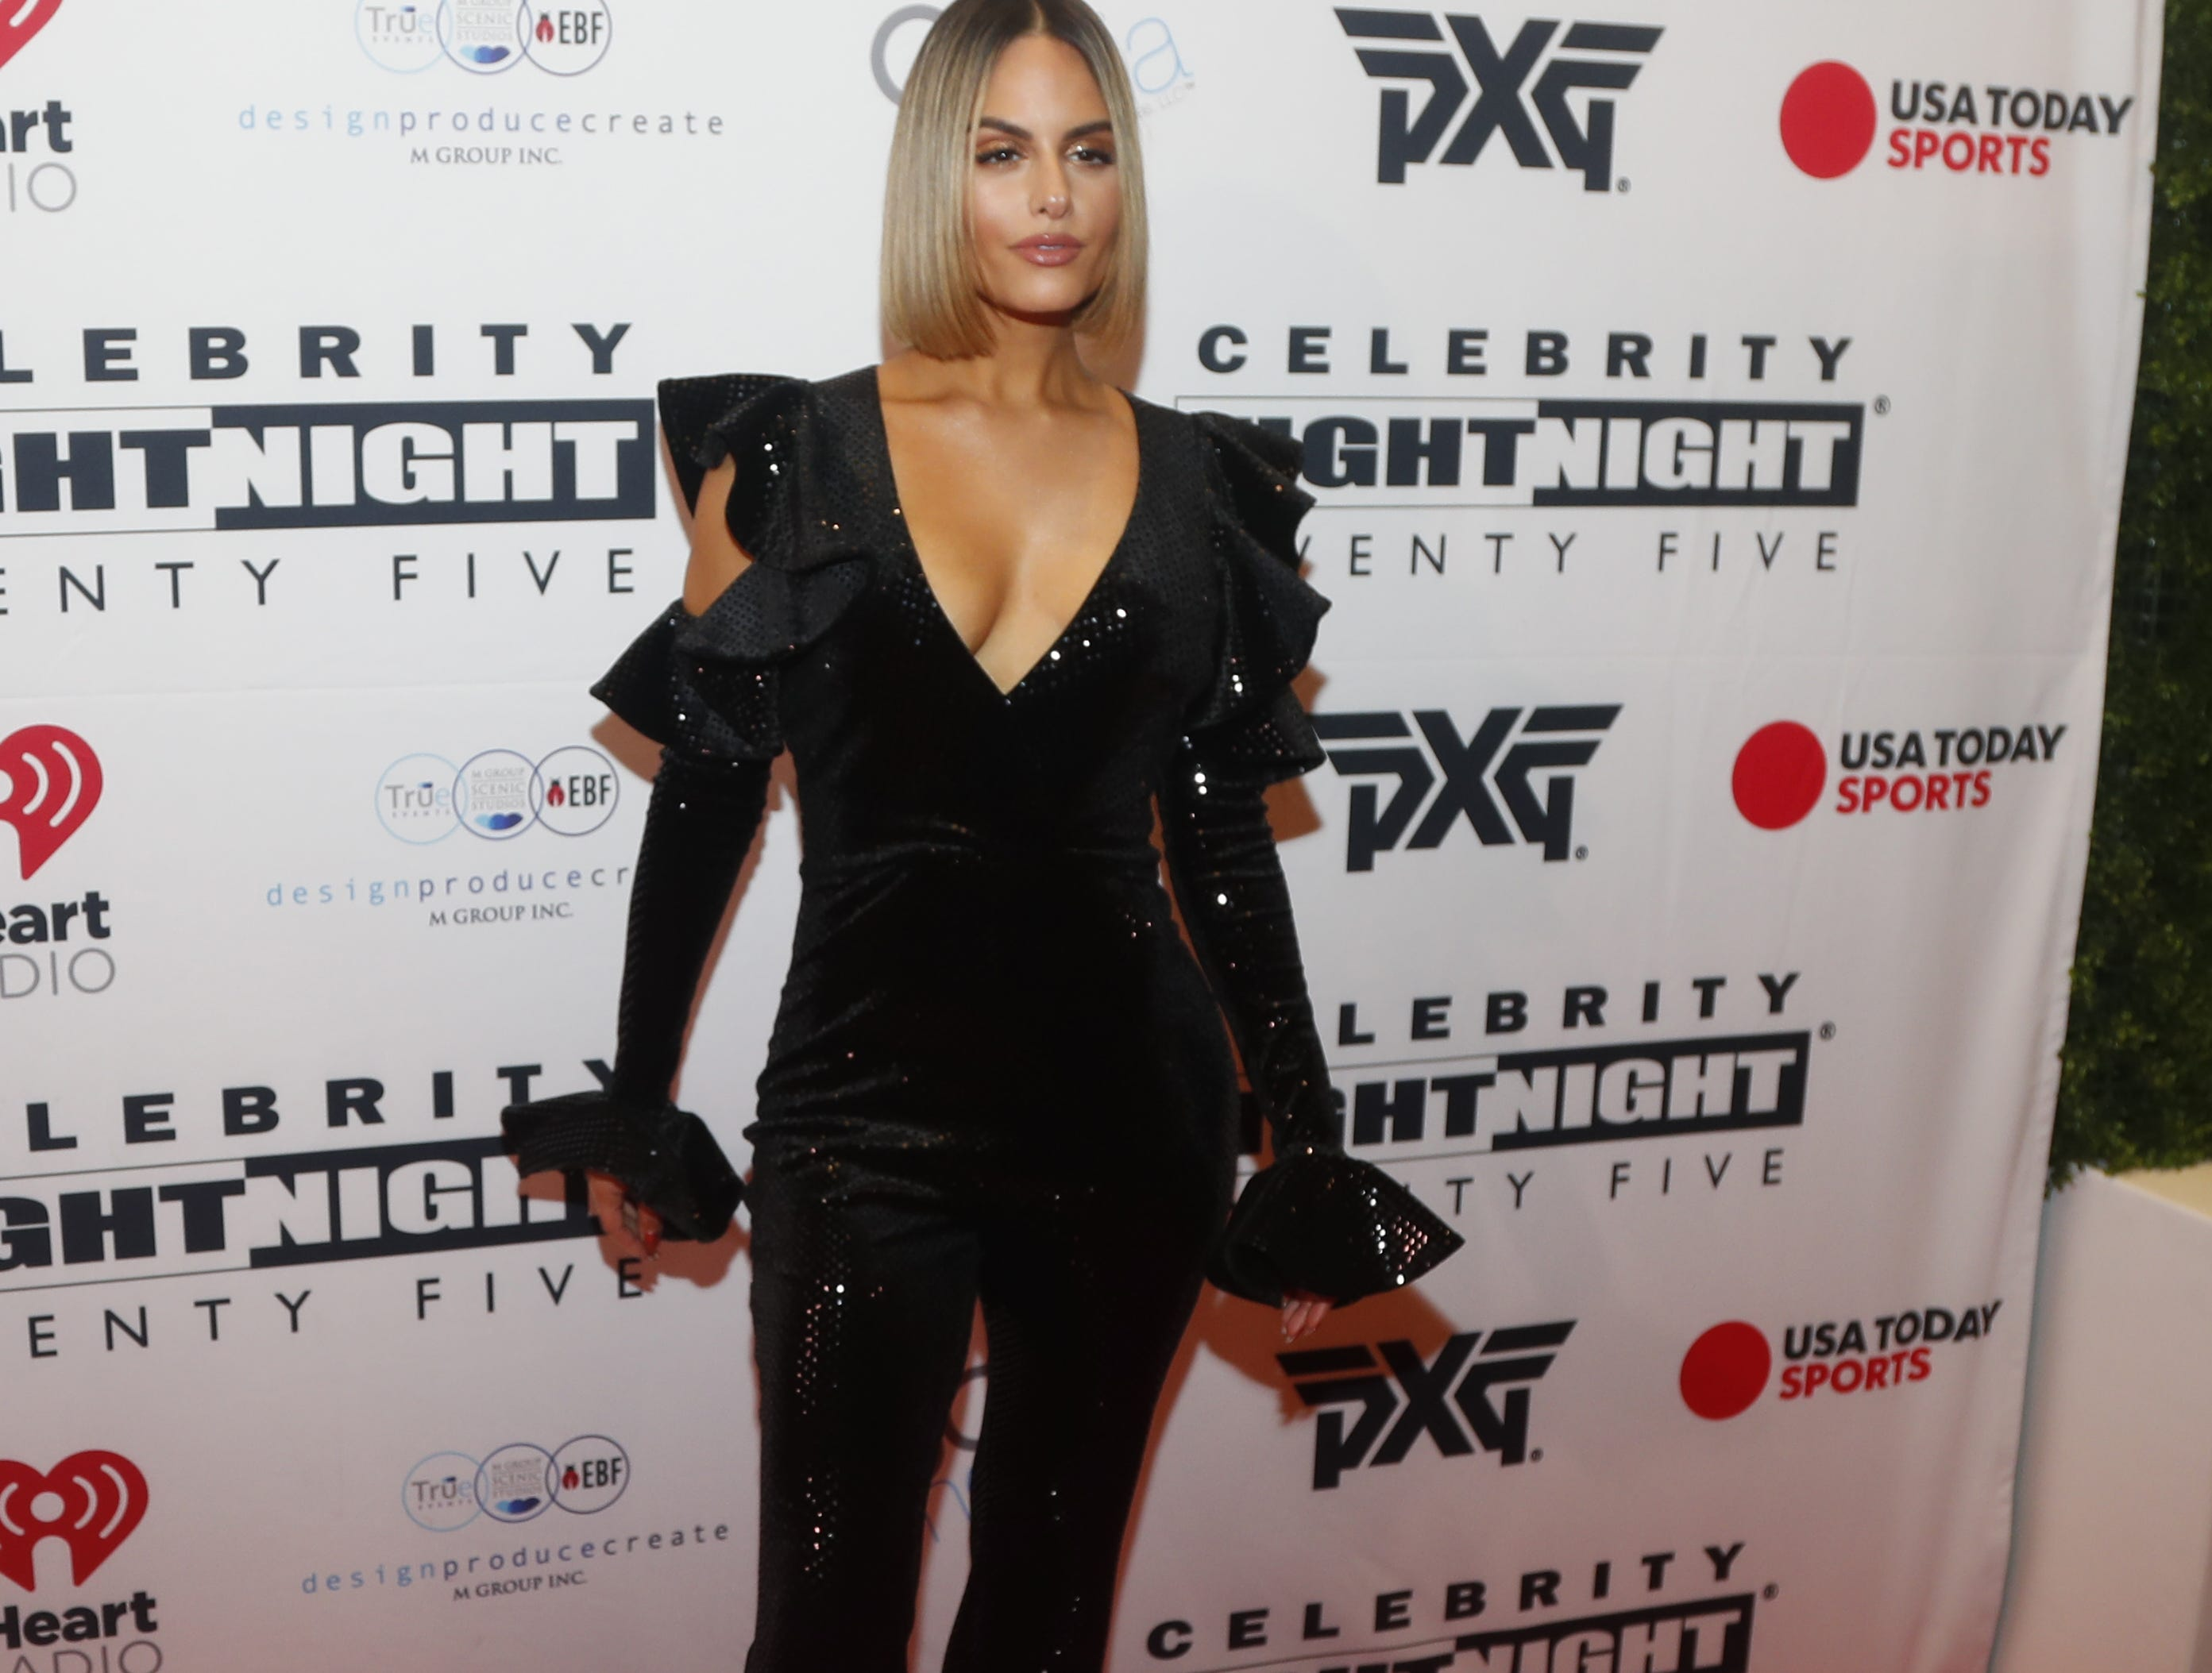 Pia Toscano poses for pictures during the Celebrity Fight Night red carpet in Scottsdale, Ariz., on March 23, 2019.